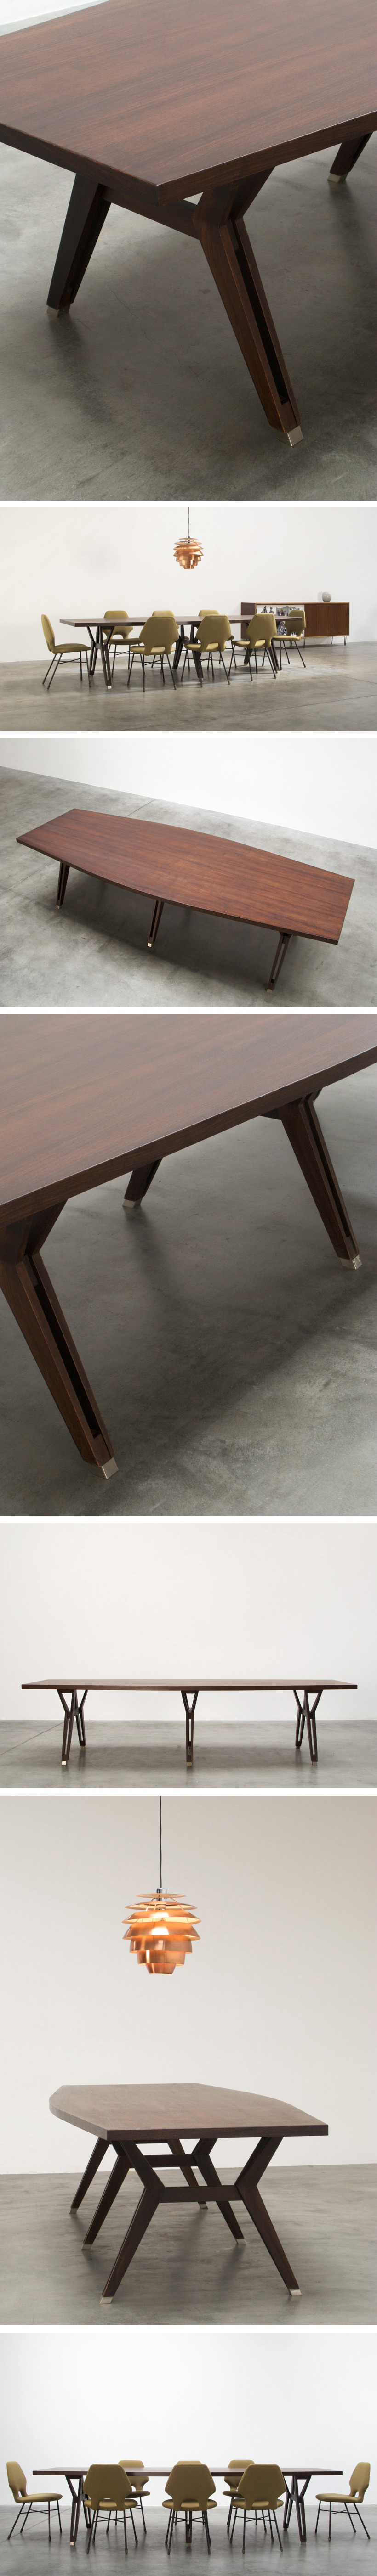 Ico Parisi MIM Terni Dinning Conference table Large